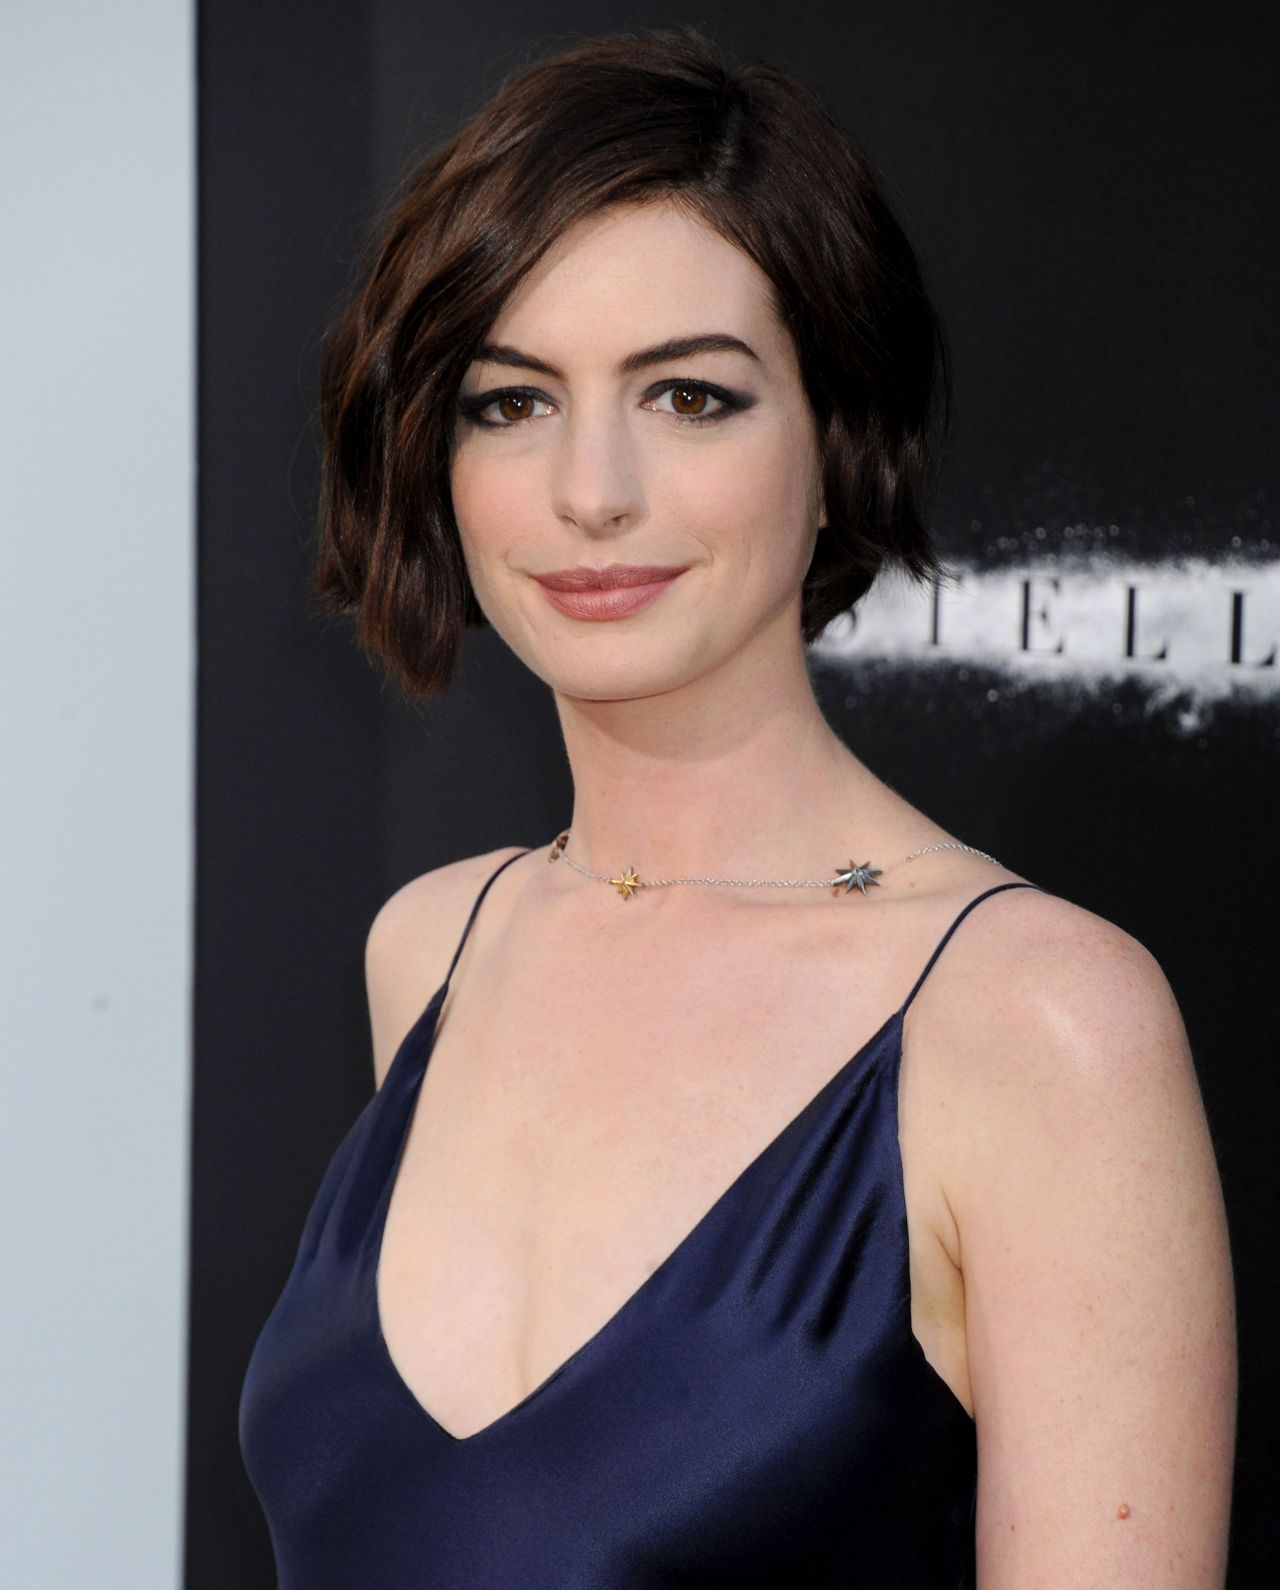 Anne Hathaway At The Hustle Premiere In Hollywood: INTERSTELLAR Premiere In Hollywood